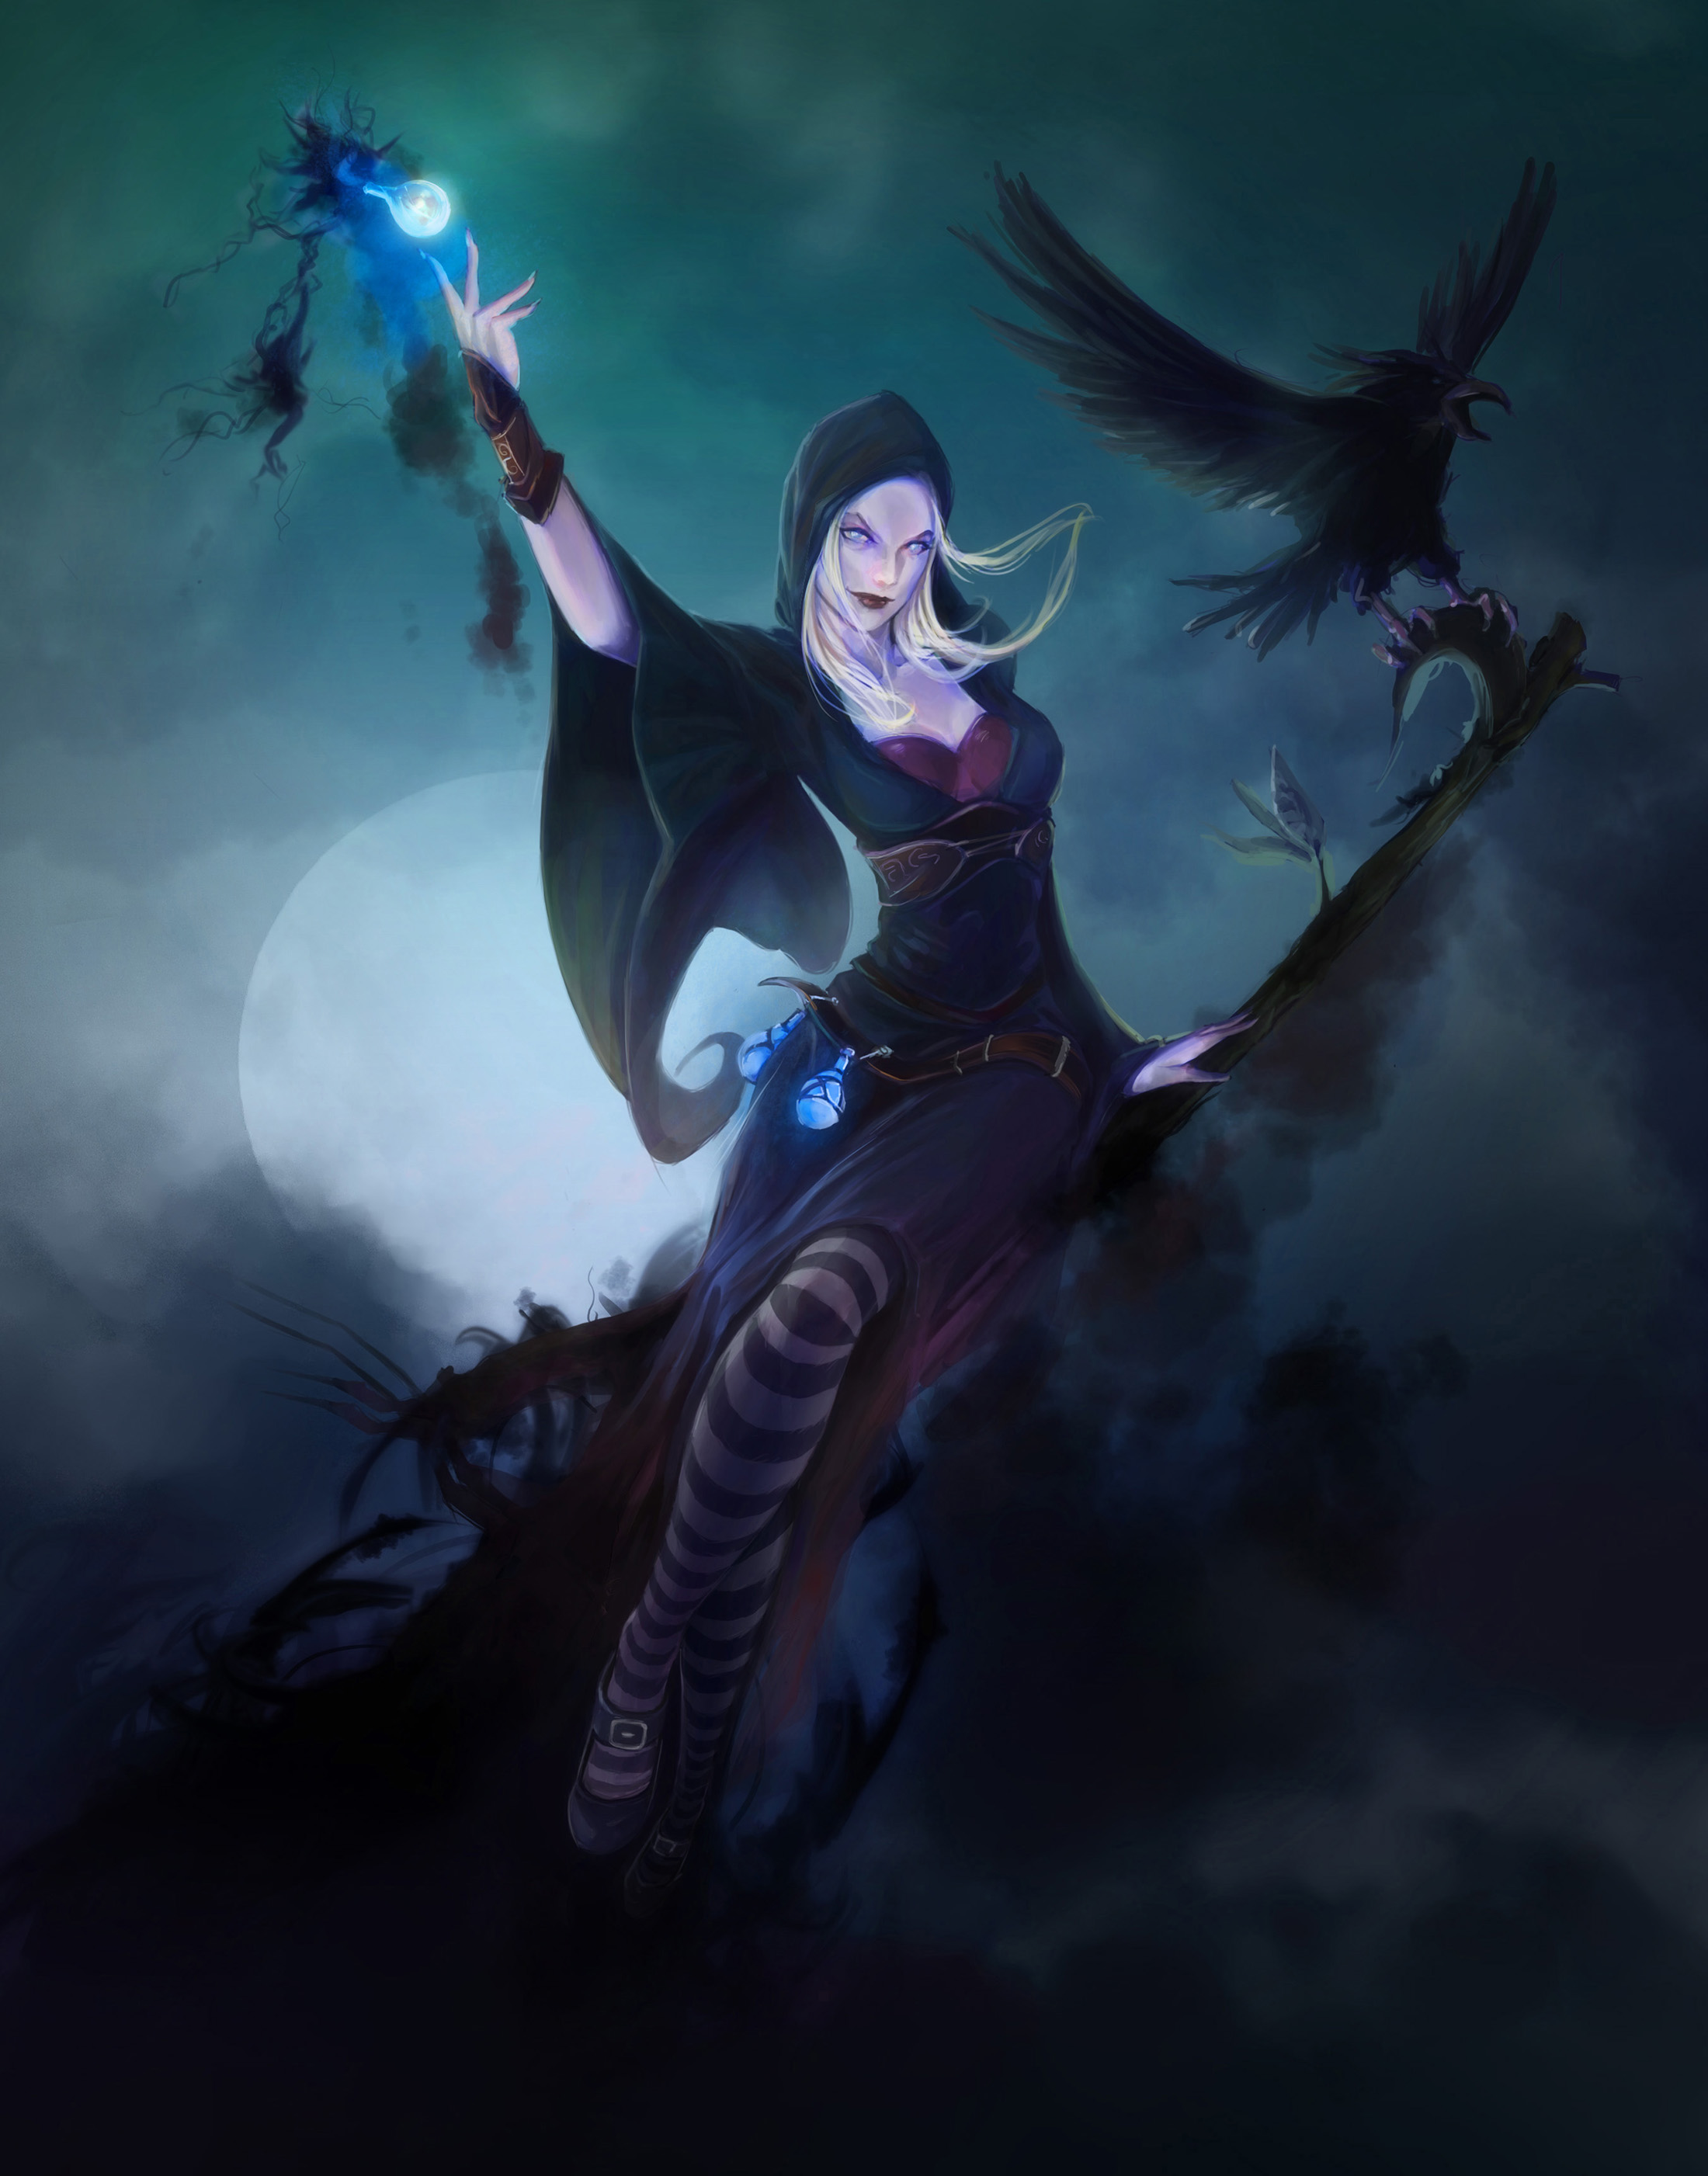 Witch by nfouque